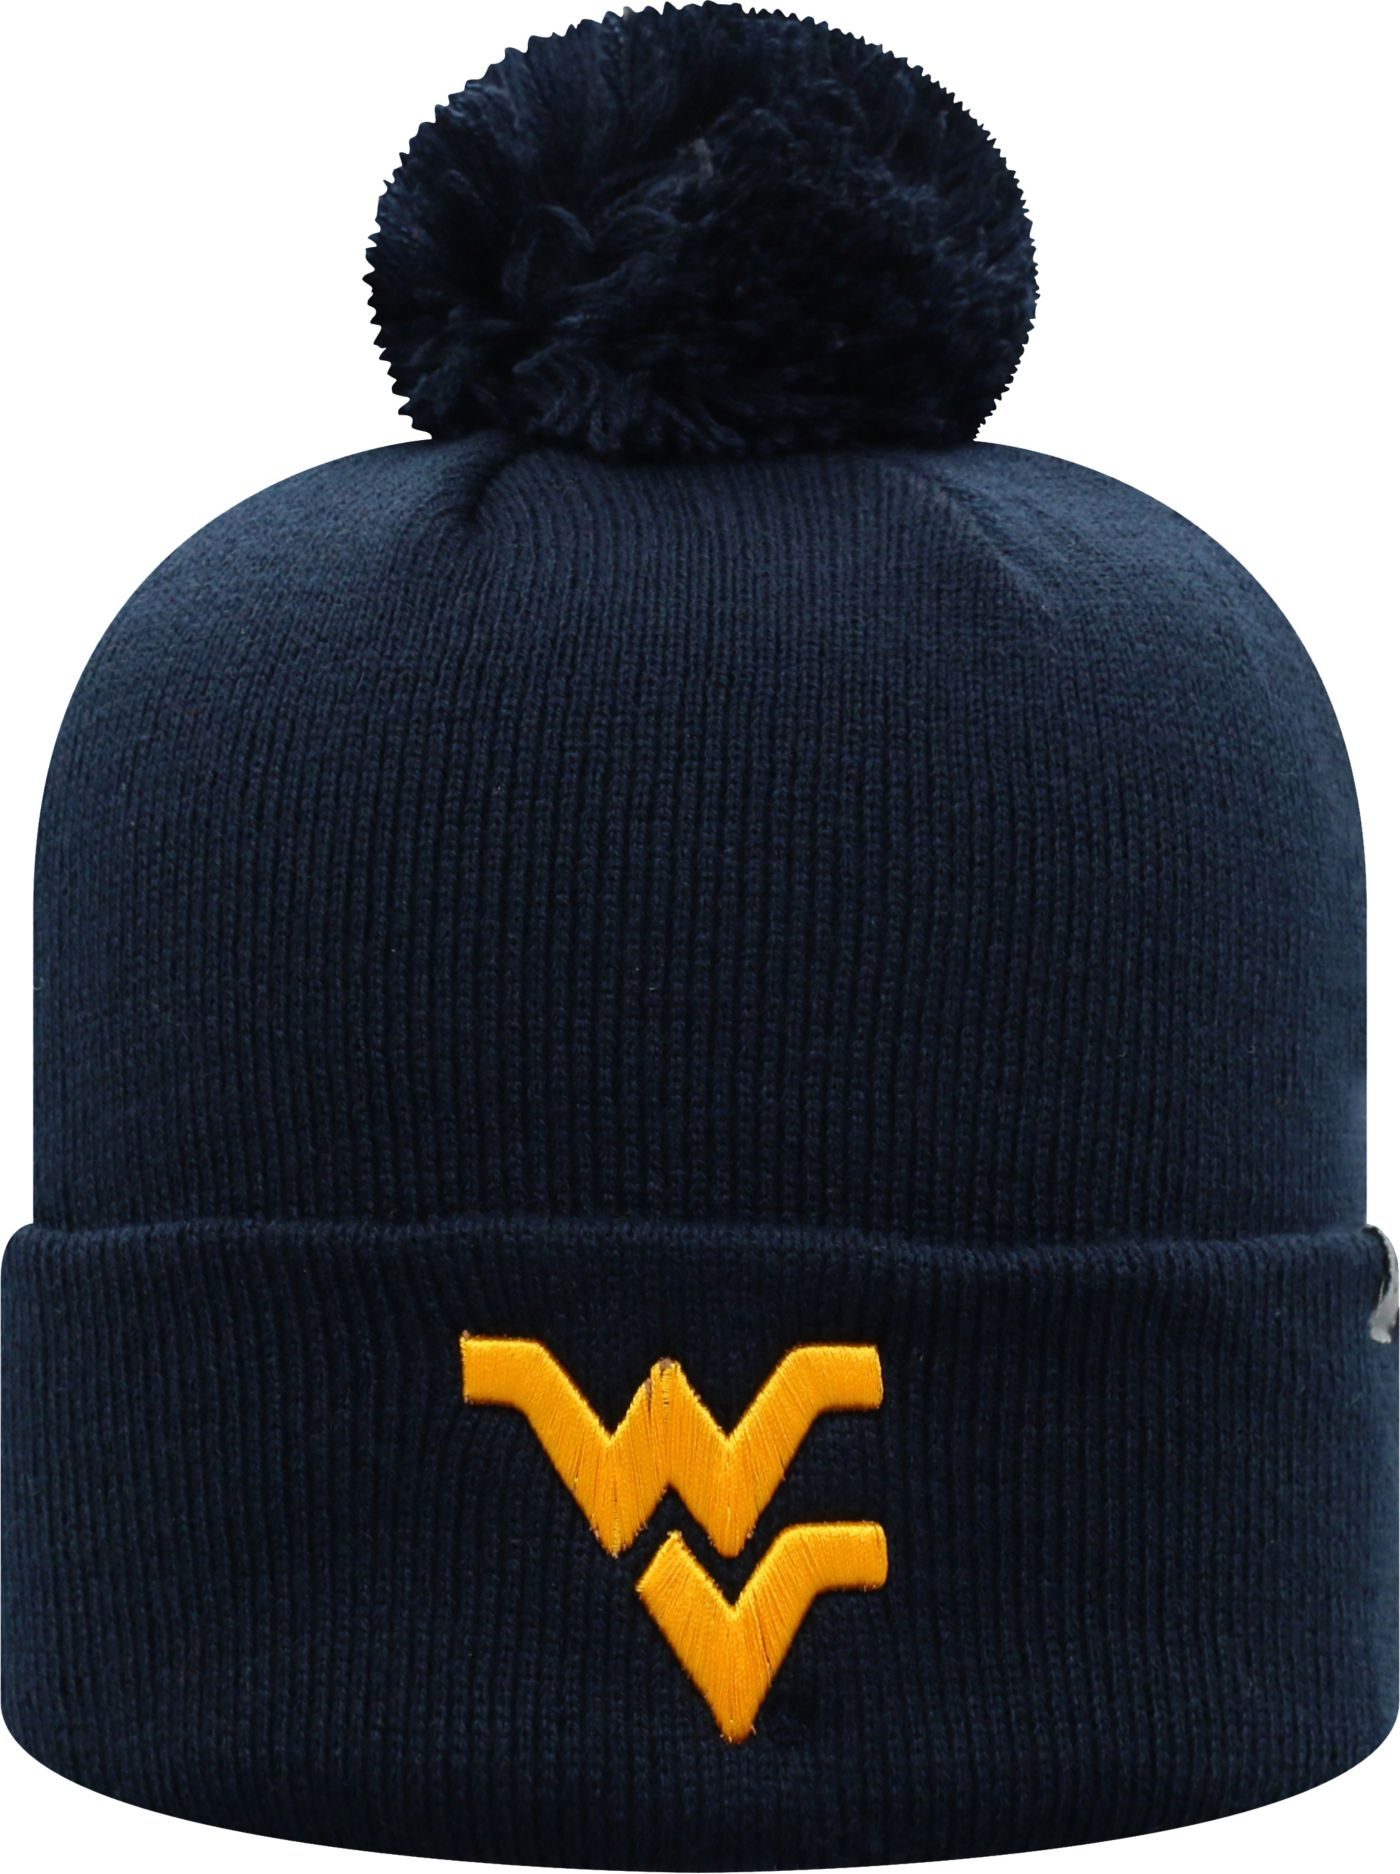 Top of the World Men's West Virginia Mountaineers Blue Pom Knit Beanie